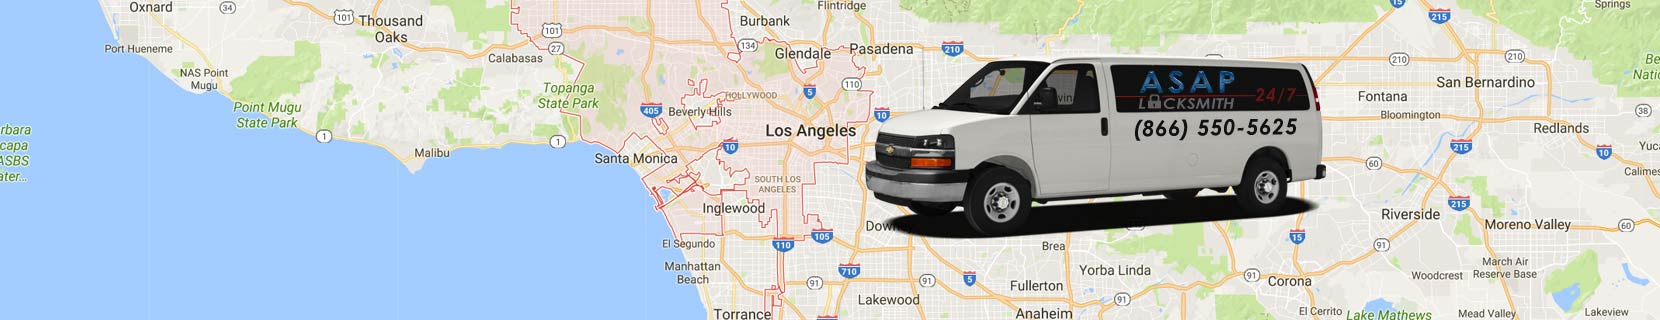 Los Angeles Map and Van